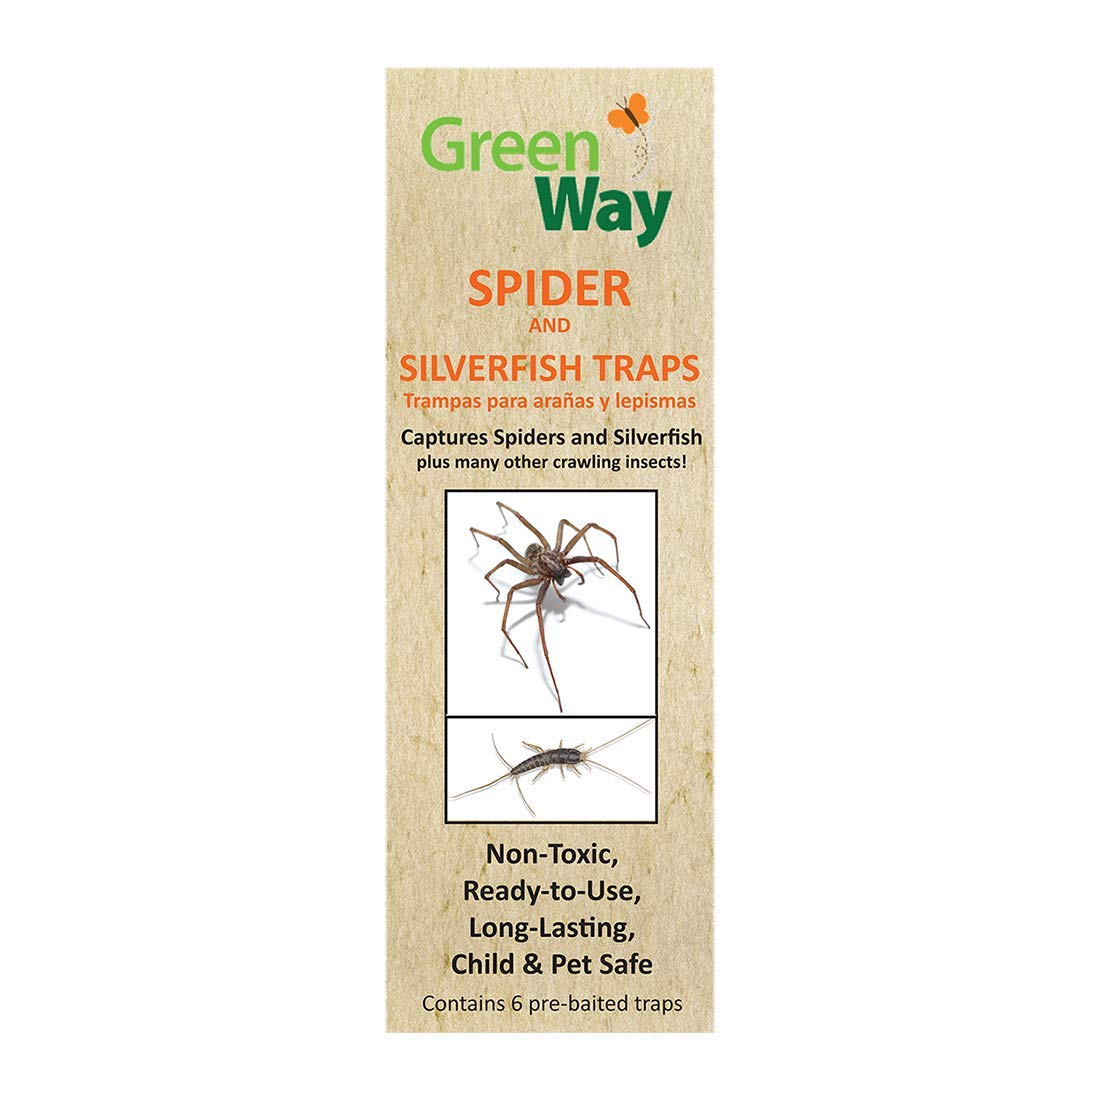 GreenWay Spider & Silverfish Trap - 72 pre baited Traps (12 Pack of 6), Ready to Use Heavy Duty Glue, Safe, Non-Toxic with No Insecticides or Odor, Eco Friendly, Kid and Pet Safe by GreenWay